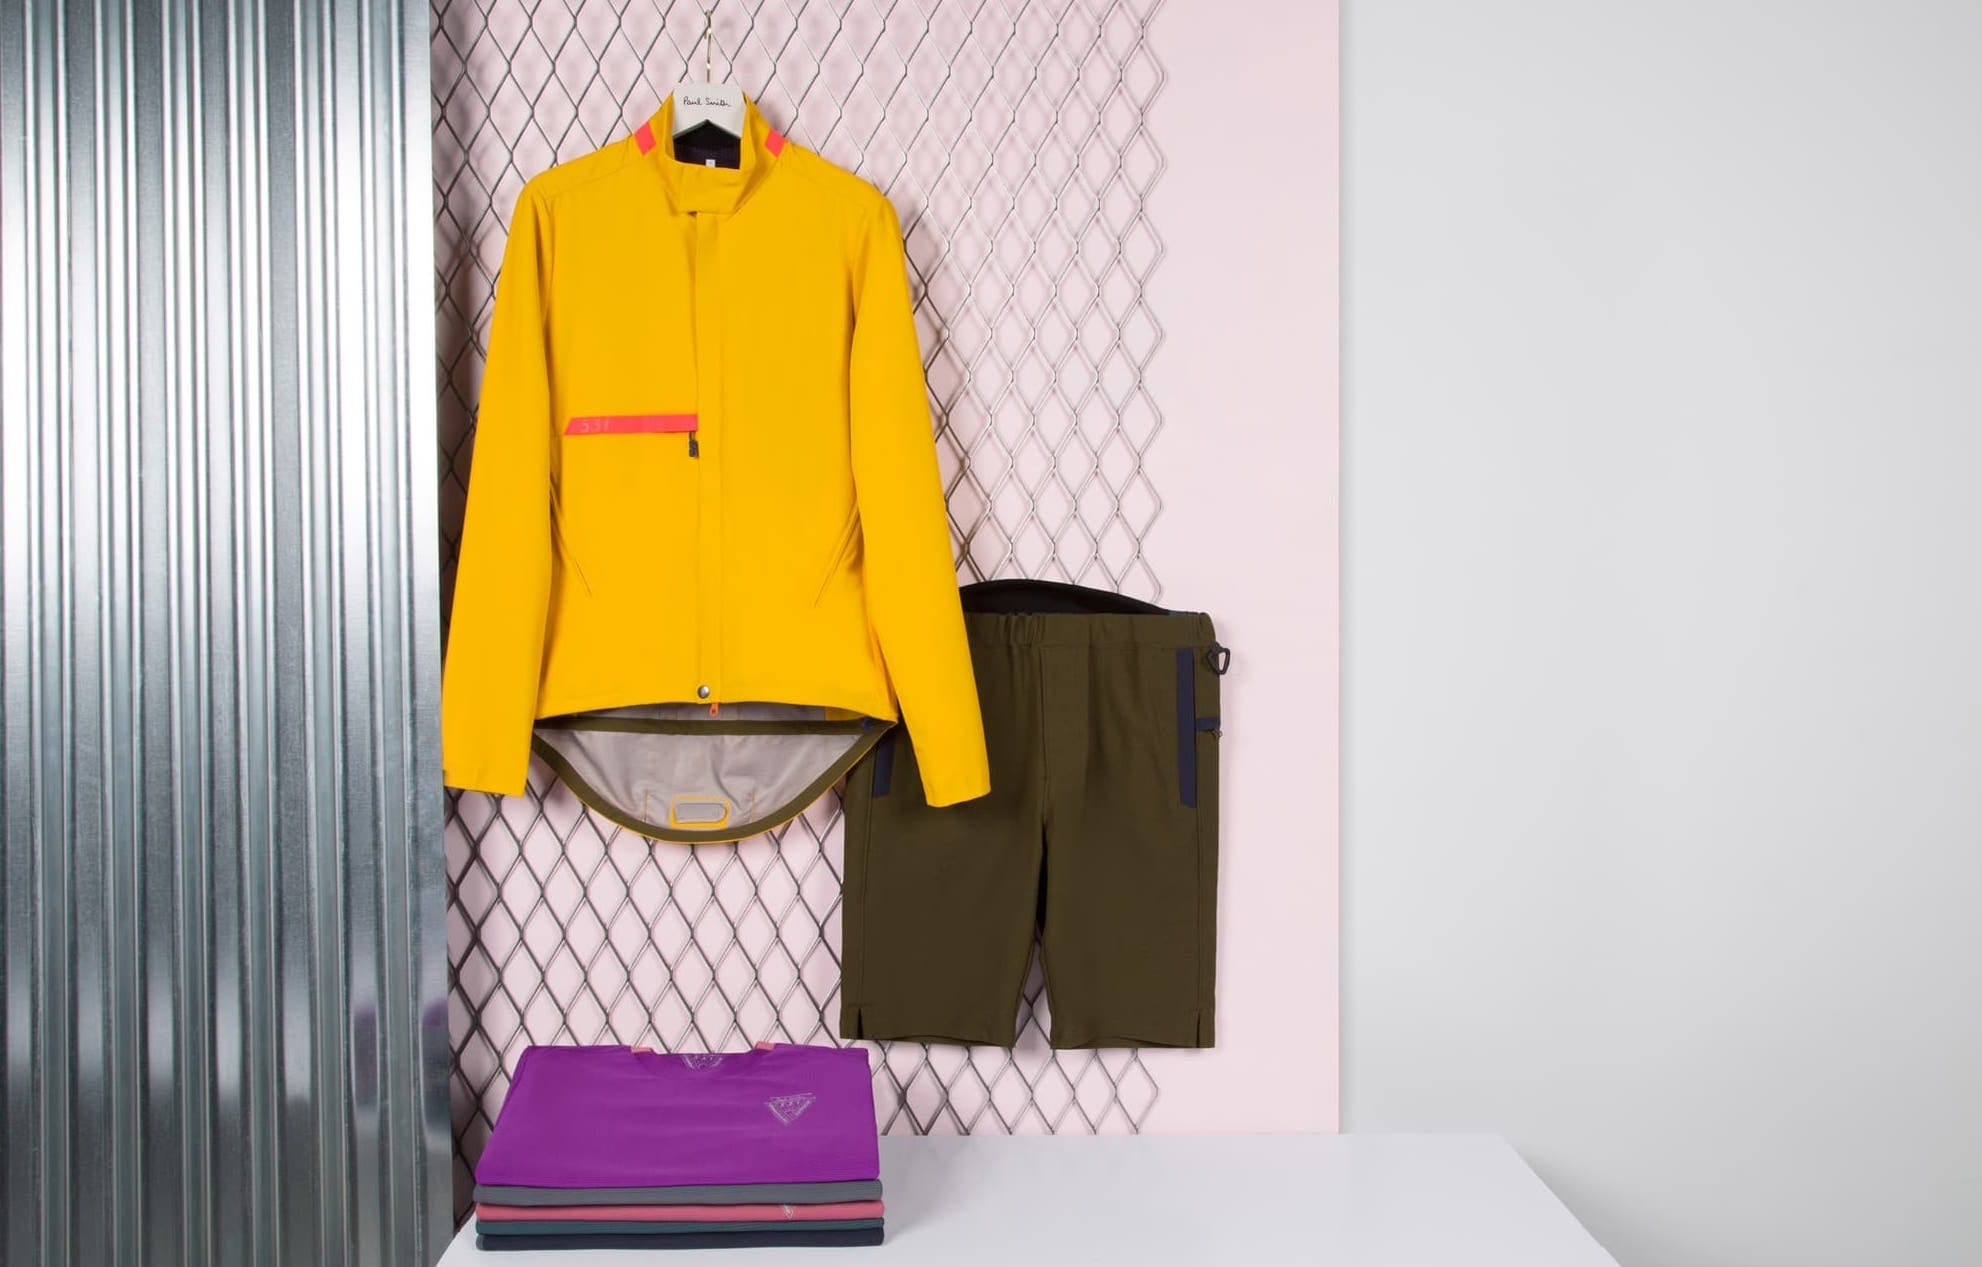 The Paul Smith 531 Collection